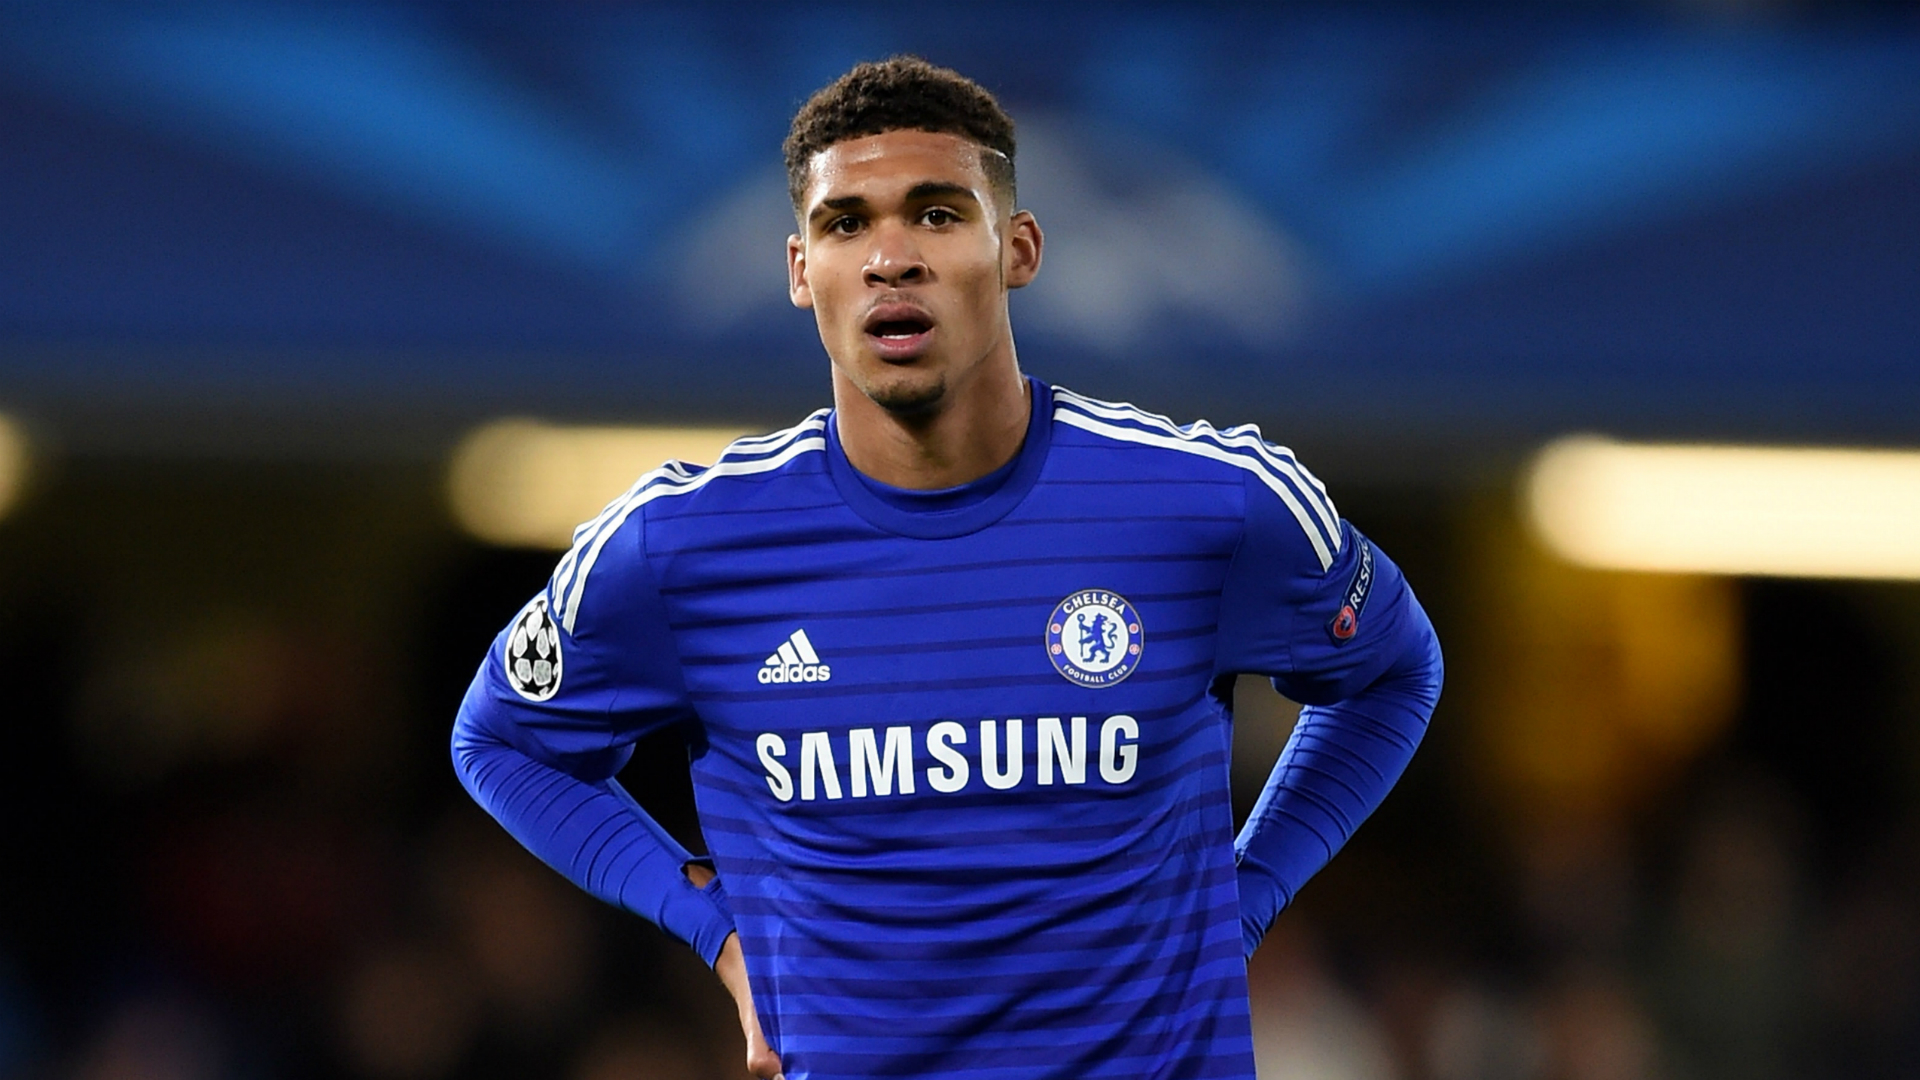 Ruben Loftus-Cheek English Chelsea Football Player